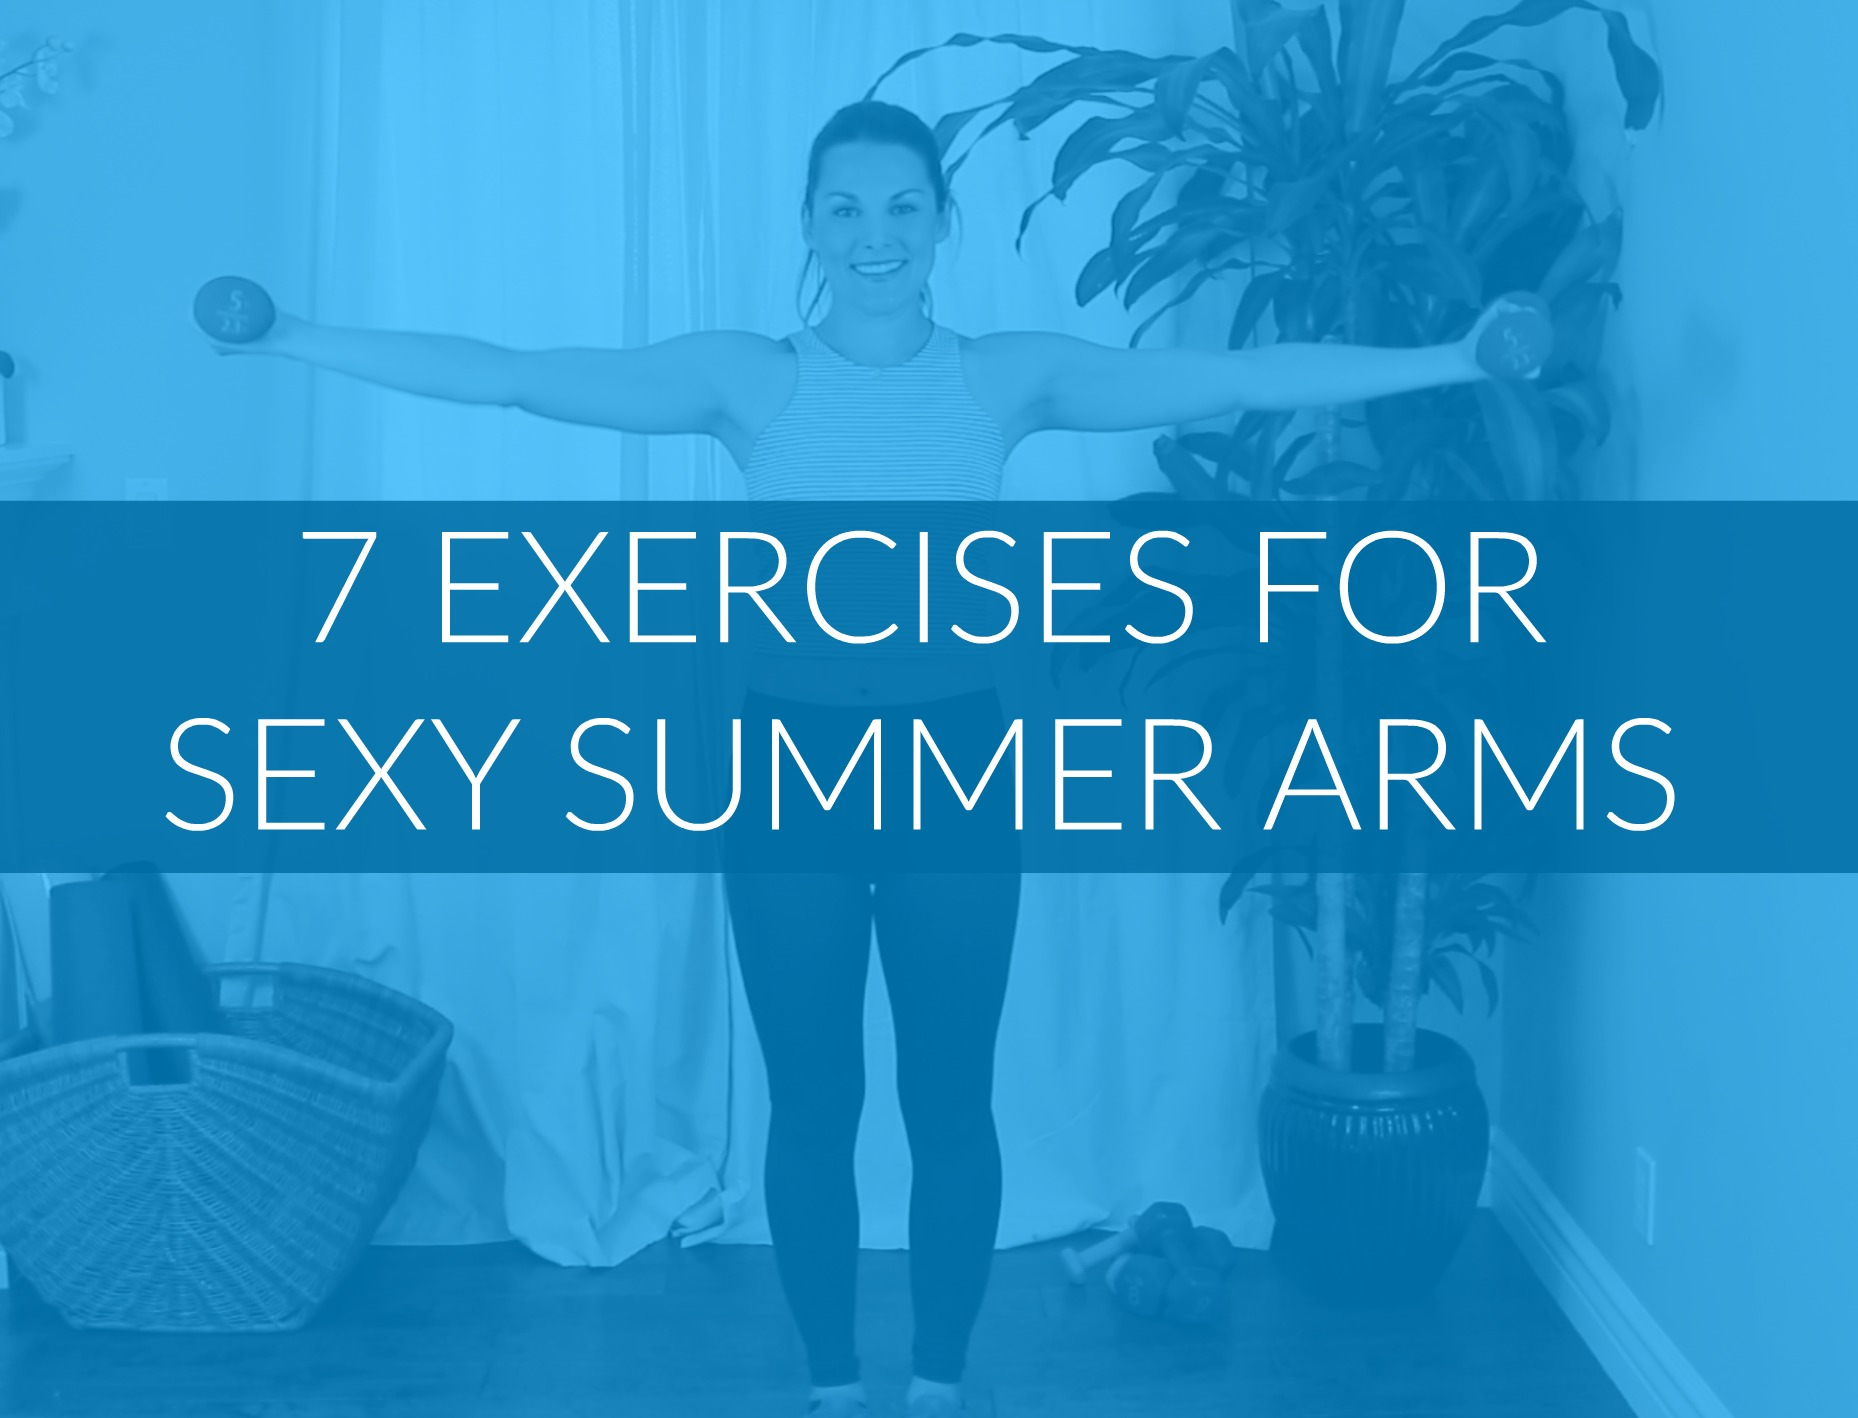 7 Exercise Arm Workout Video